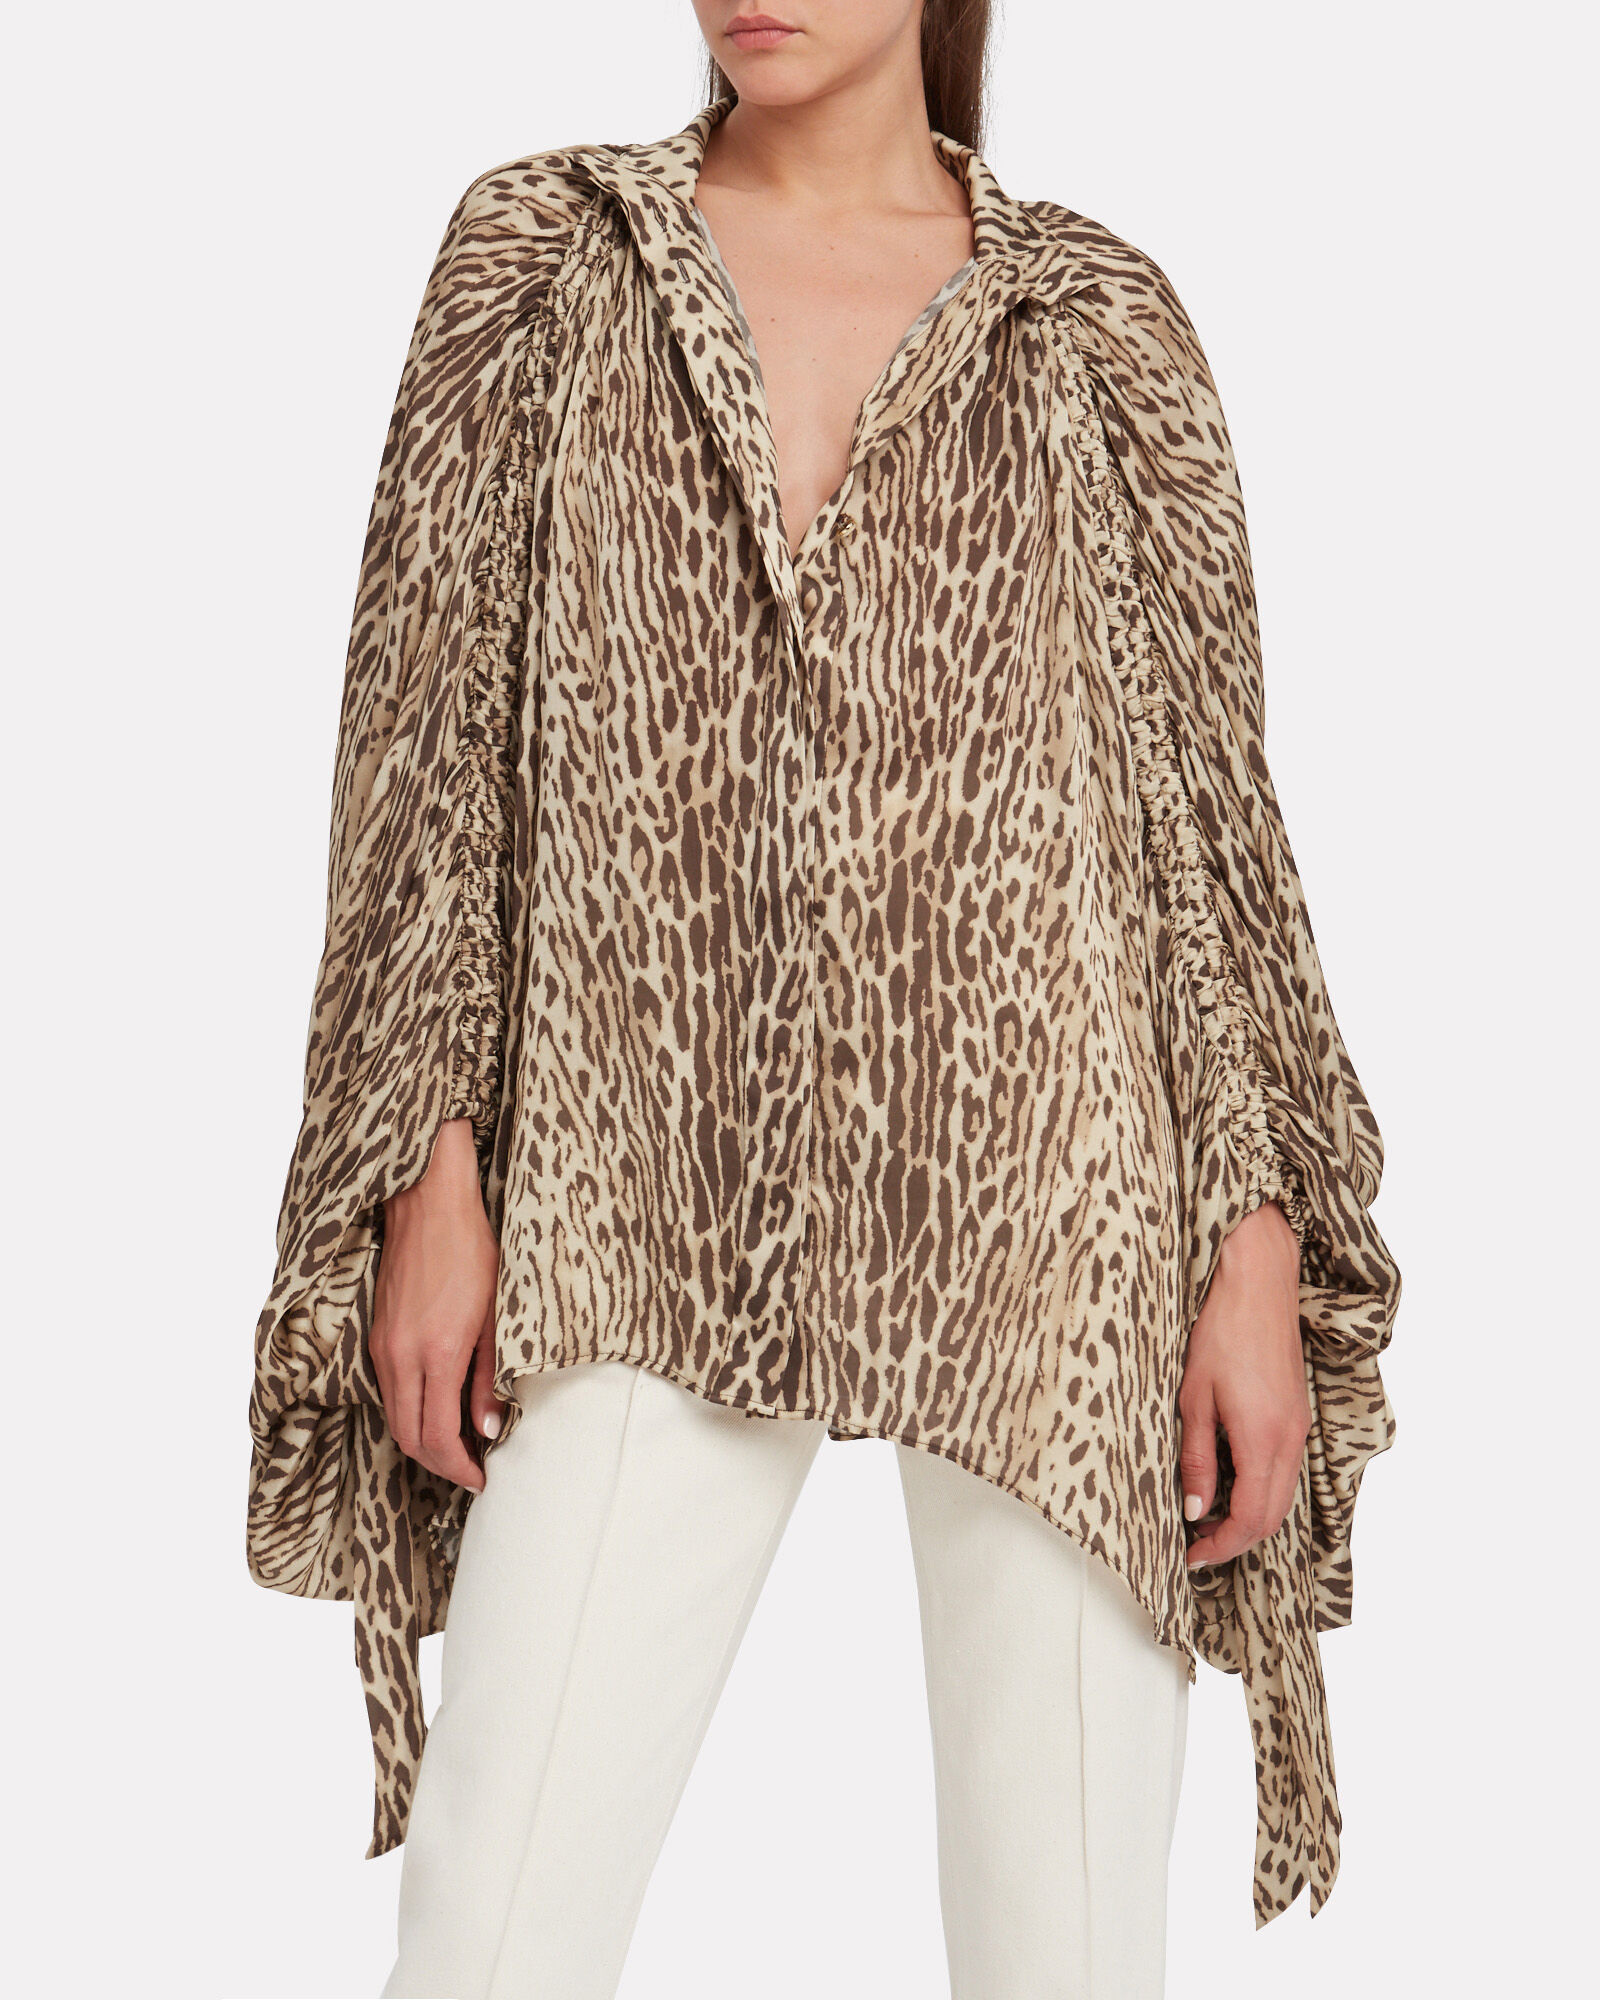 Espionage Batwing Leopard Silk Blouse, LEOPARD/BROWN, hi-res